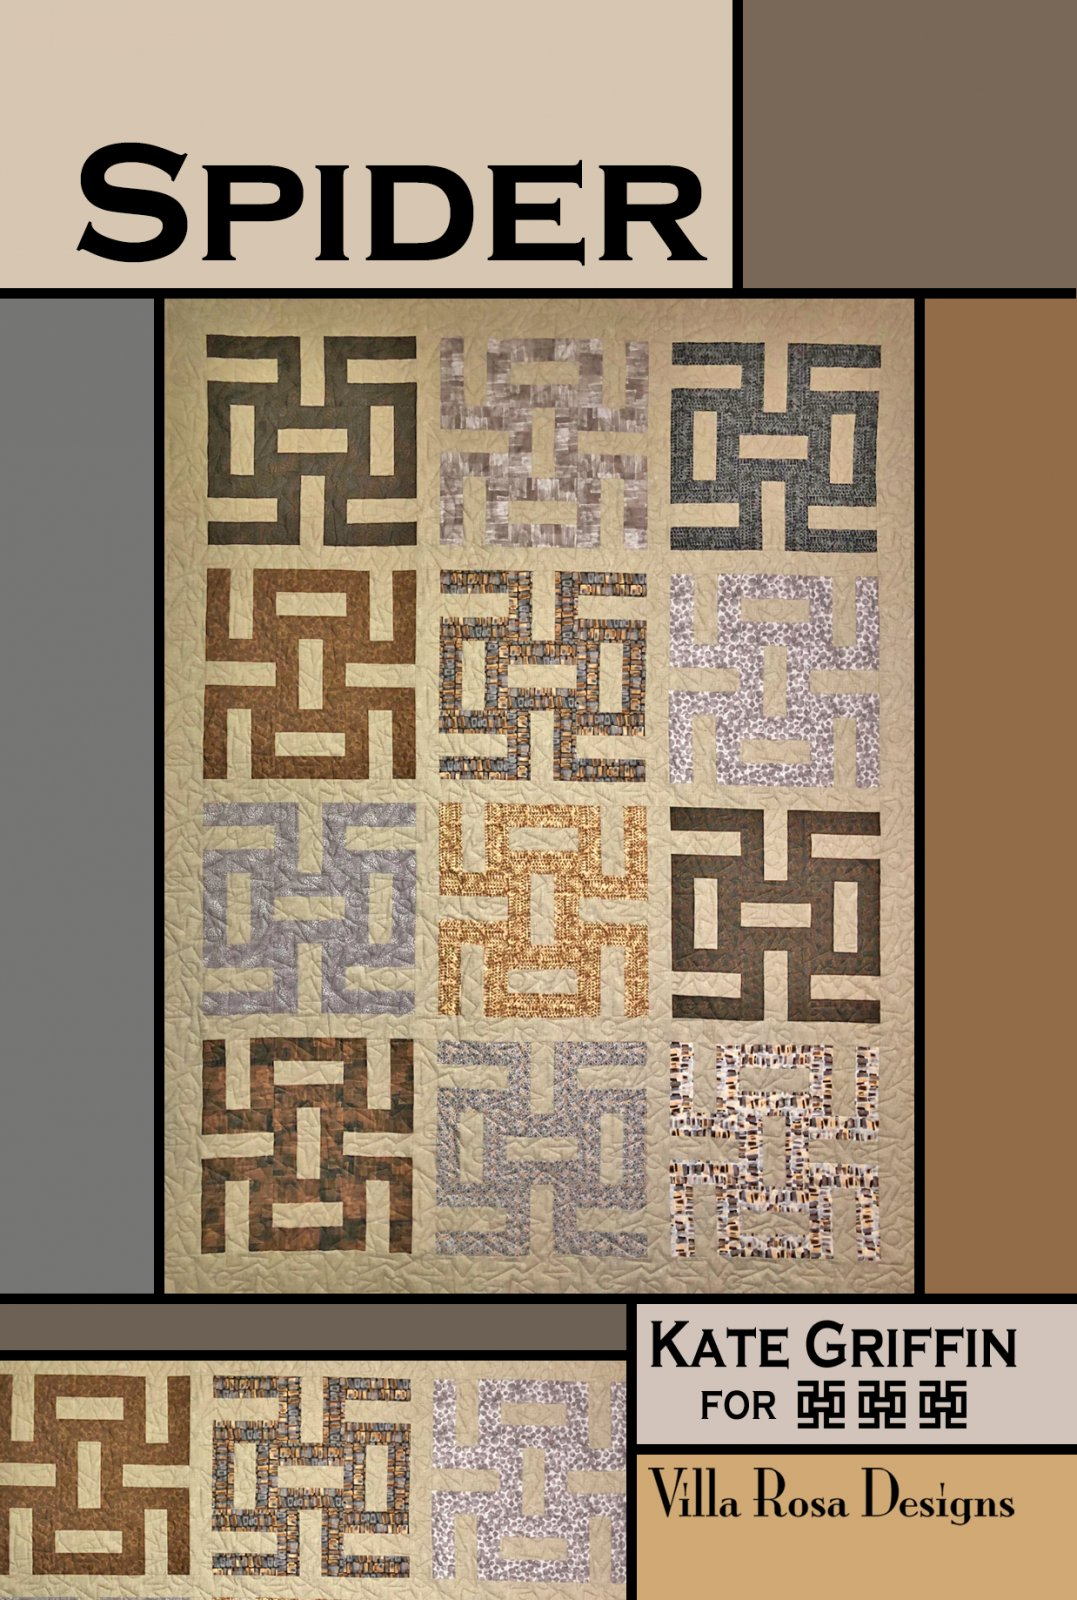 Spider-Villa Rosa - QUILT KIT - Fushions Metallic/Maywood - 66 x 86